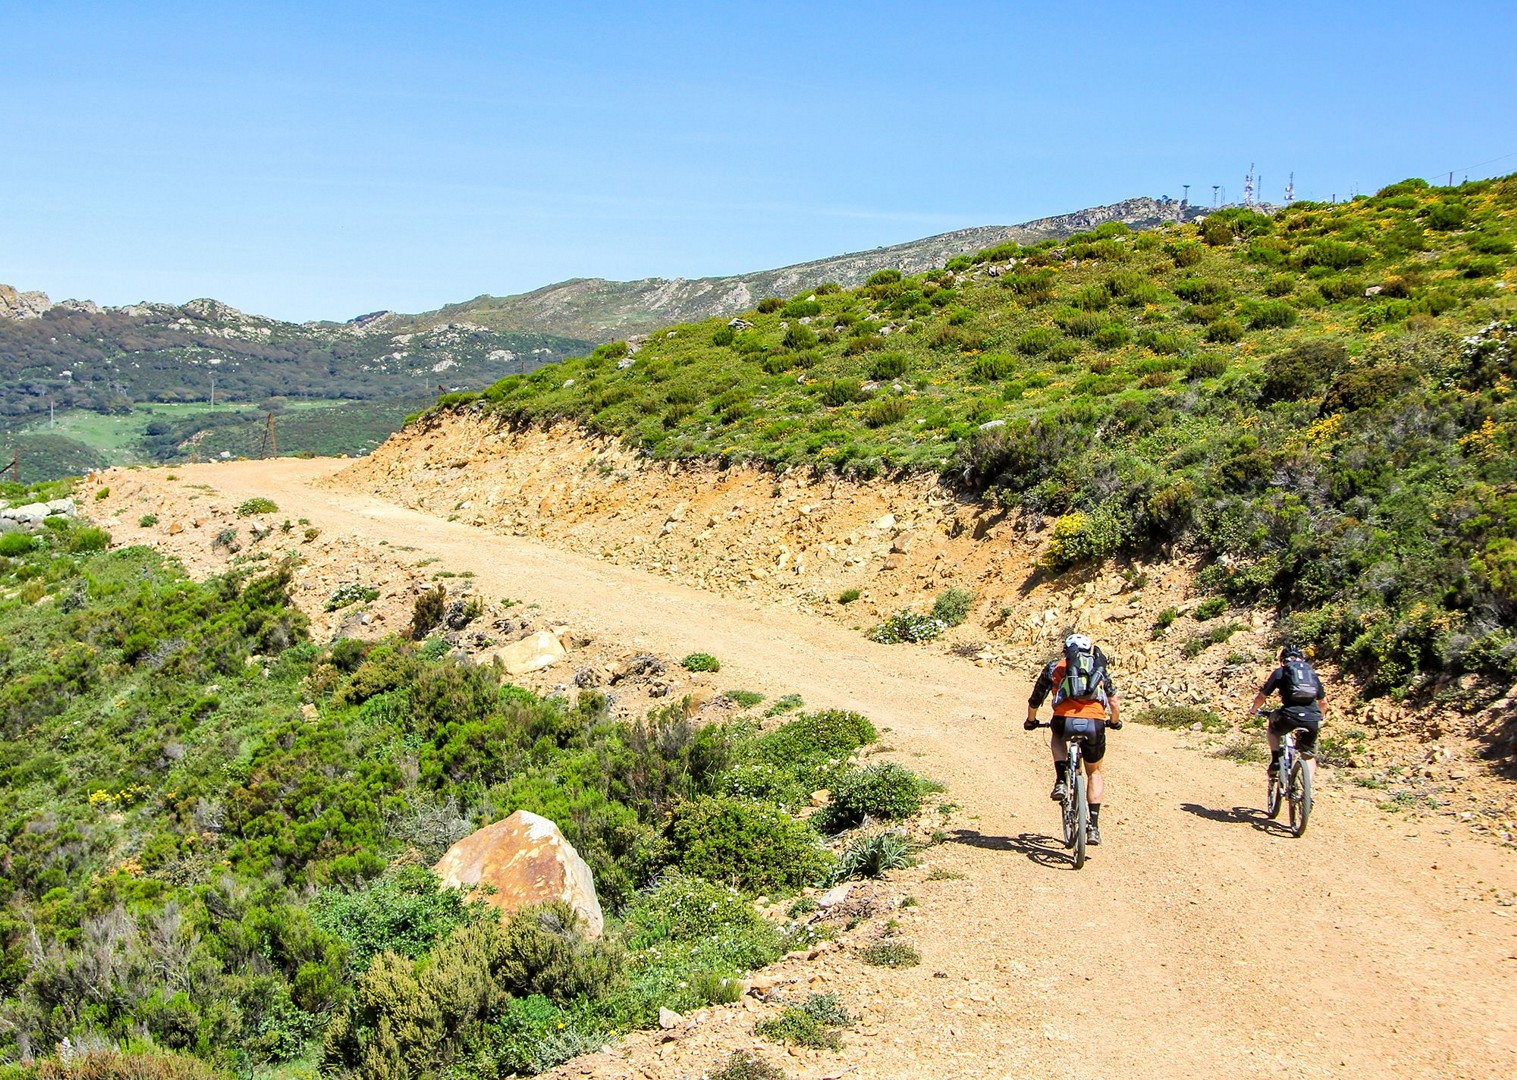 saddle-skedaddle-guided-mountain-bike-holiday-trans-andaluz-spain.jpg - Spain - Trans Andaluz - Guided Mountain Bike Holiday - Mountain Biking